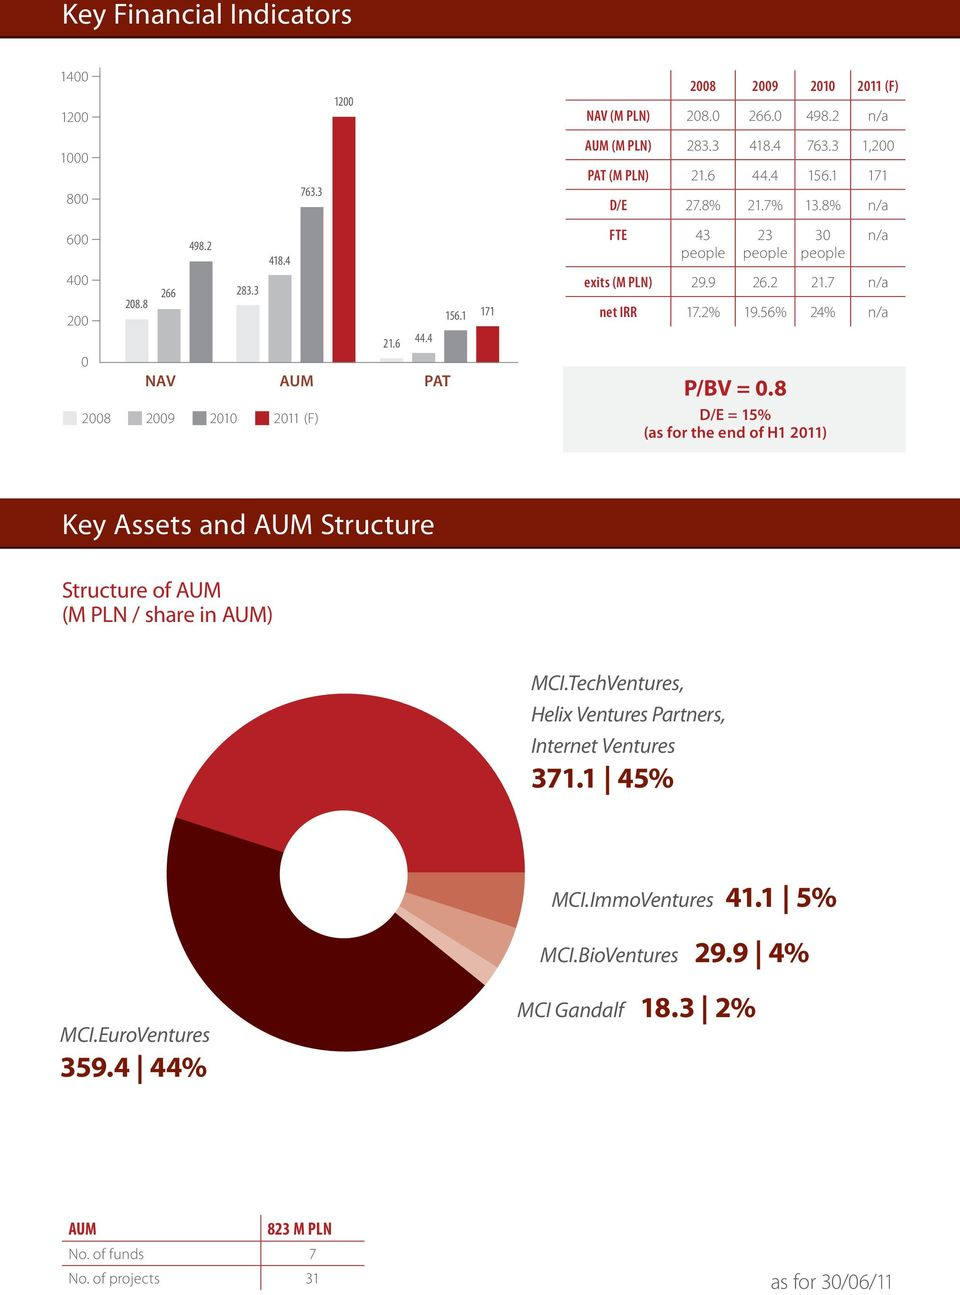 7 n/a net IRR 17.2% 19.56% 24% n/a P/BV = 0.8 D/E = 15% (as for the end of H1 2011) Key Assets and AUM Structure Structure of AUM (M PLN / share in AUM) MCI.